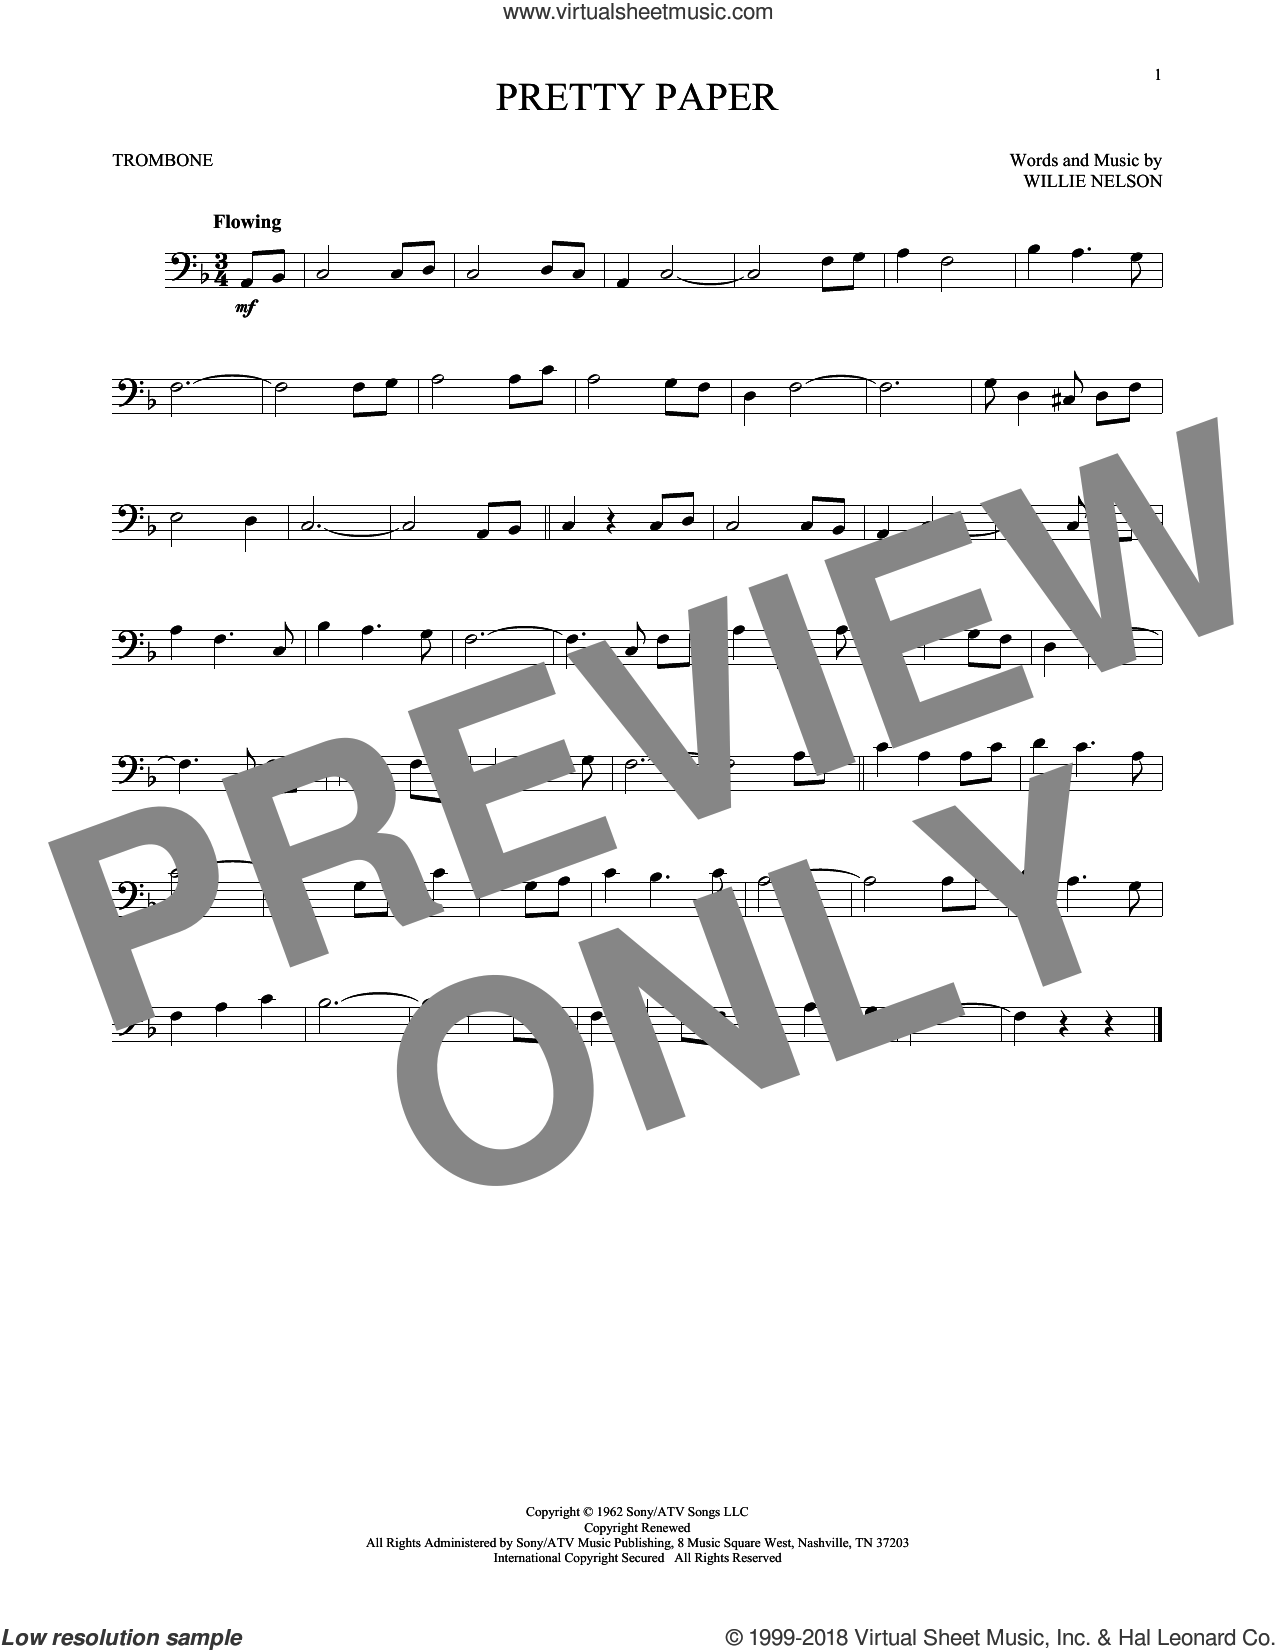 Pretty Paper sheet music for trombone solo by Willie Nelson and Roy Orbison, intermediate